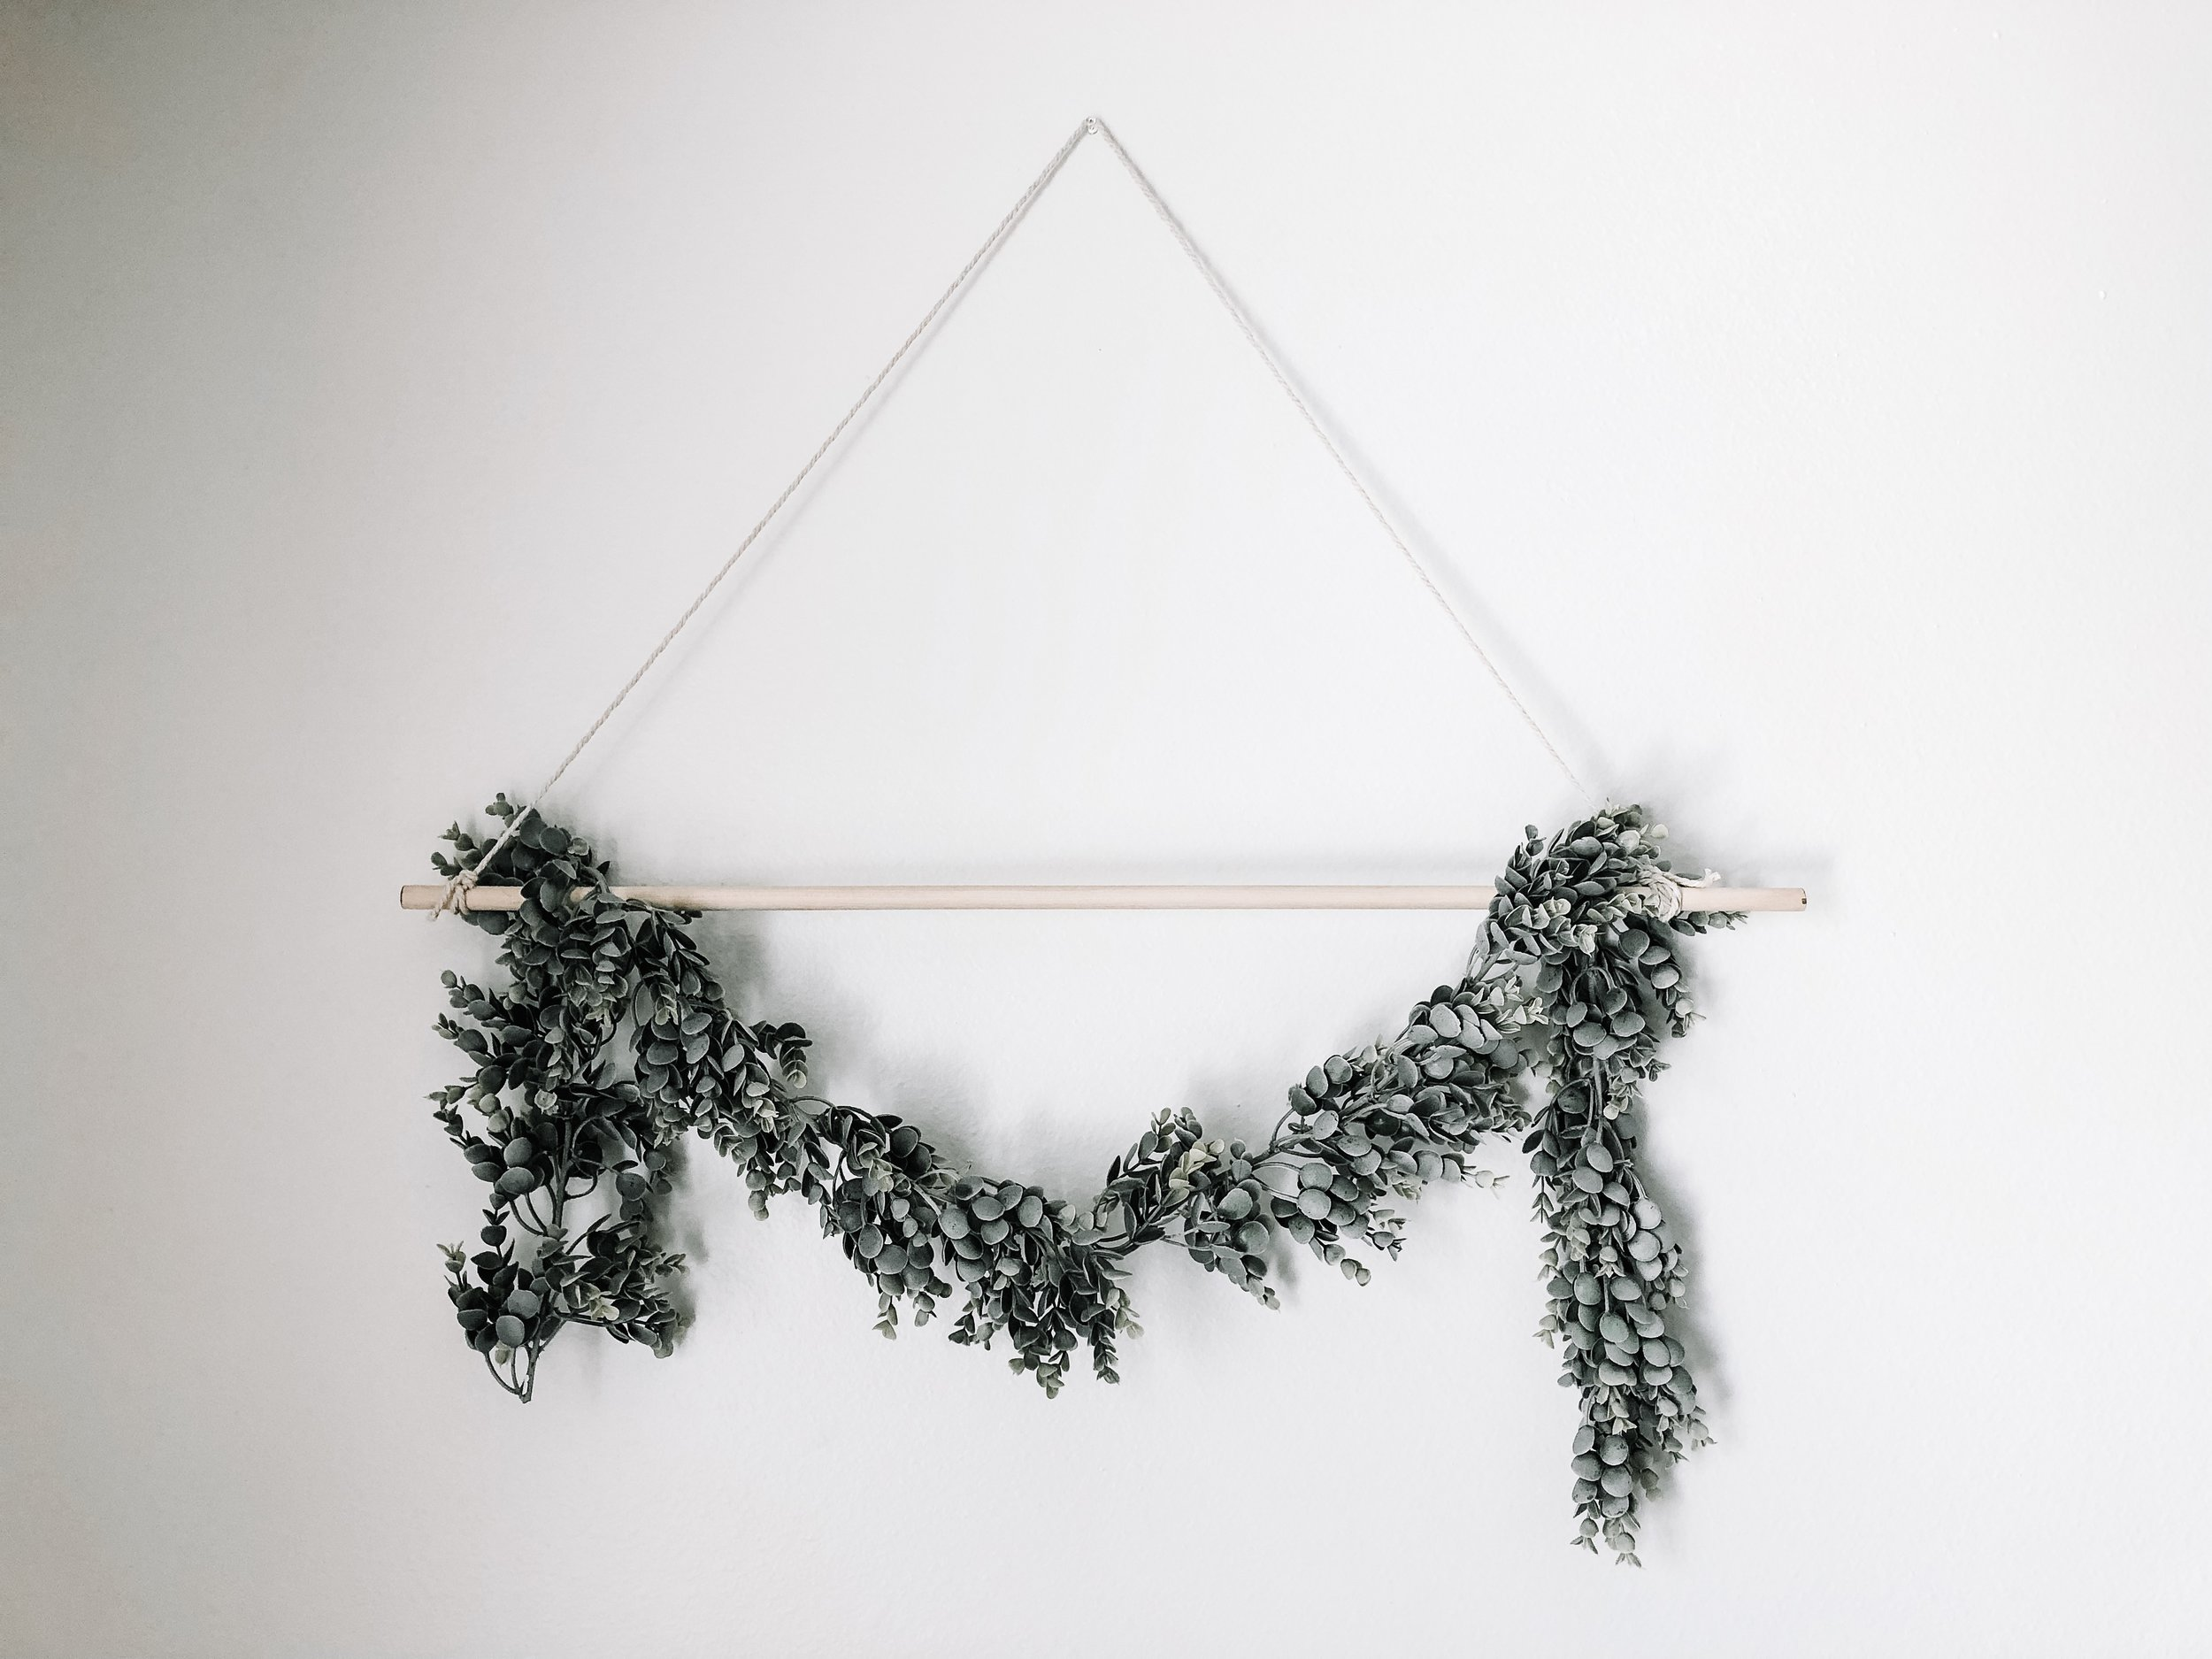 DIY-Eucalyptus-garland-bedroom-hanging-easy.jpg